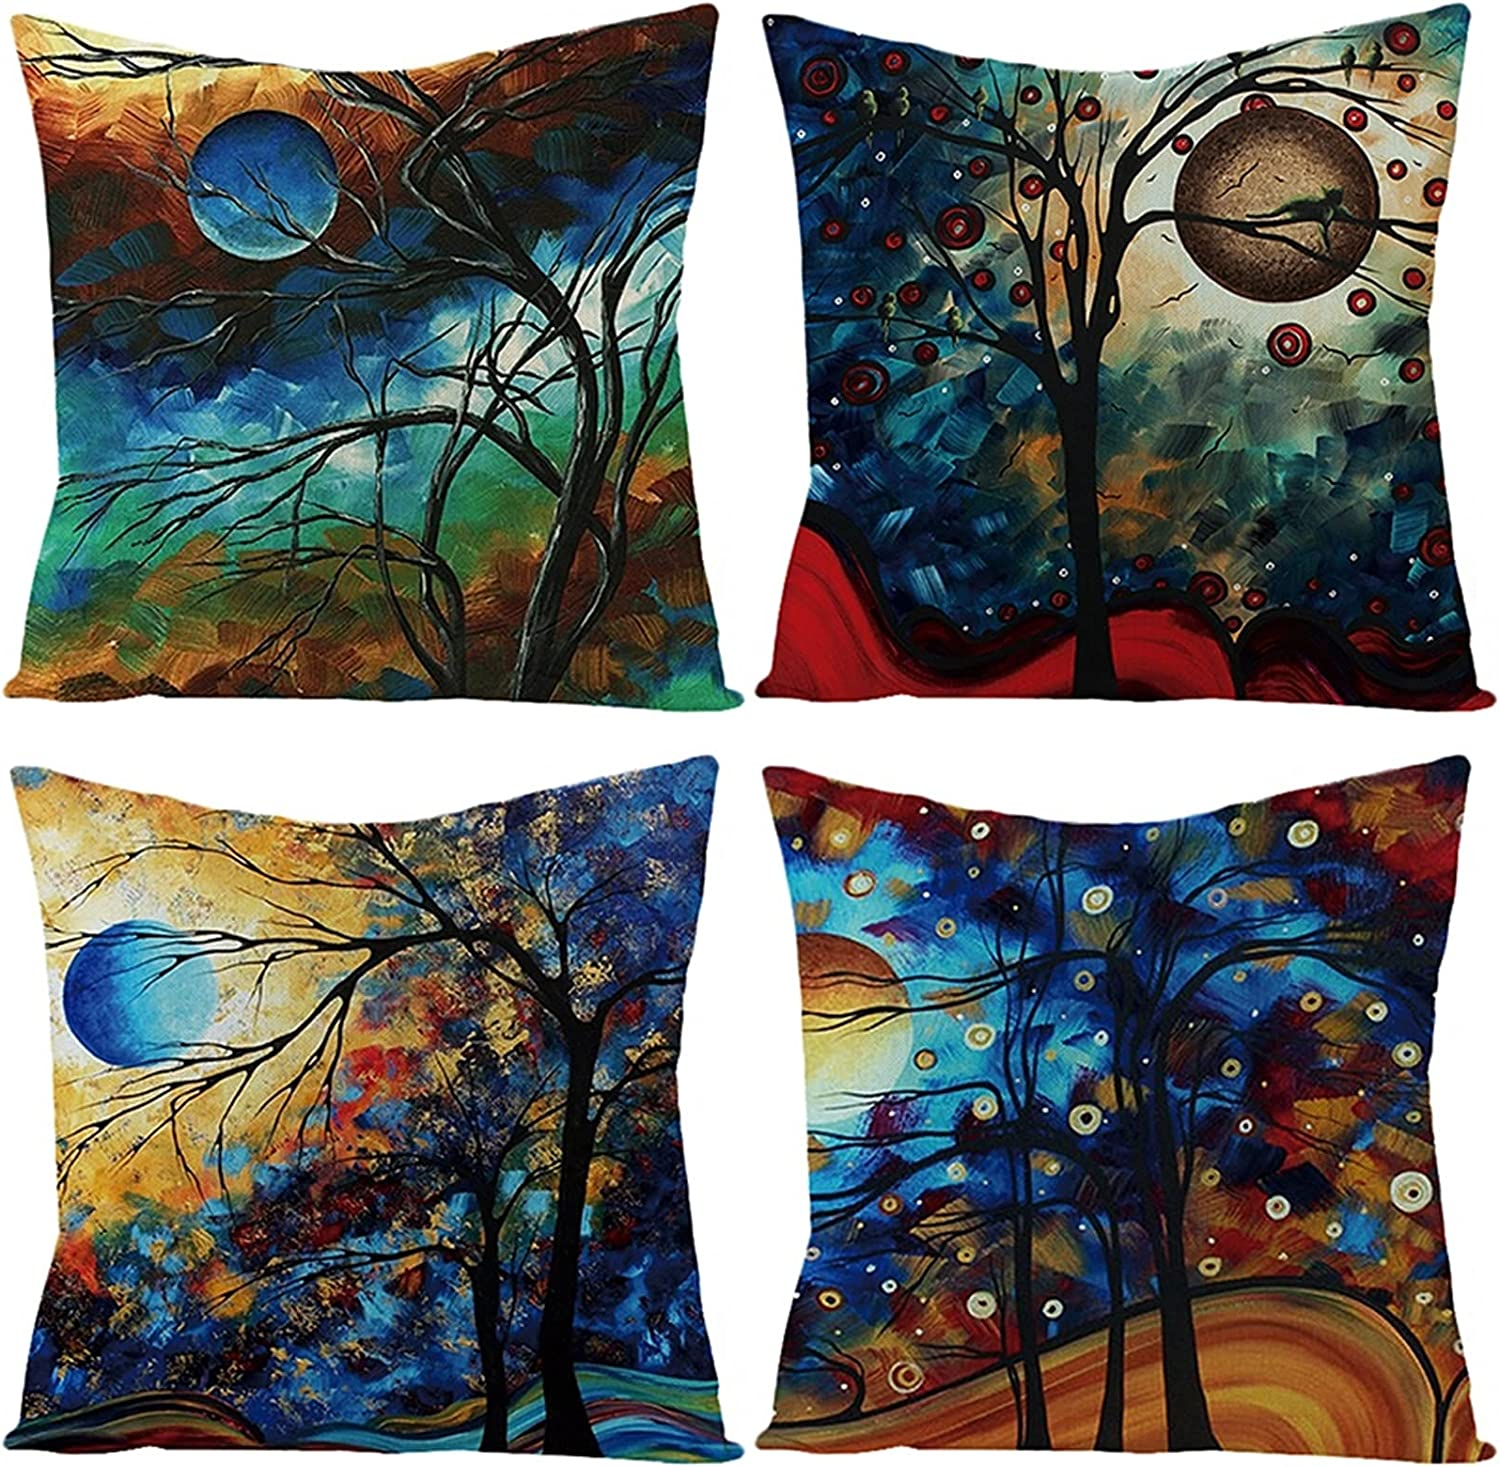 Daesar 4 years warranty Throw Cushion Covers Pillows Cases Over item handling ☆ 4 Pack Black 20x Blue